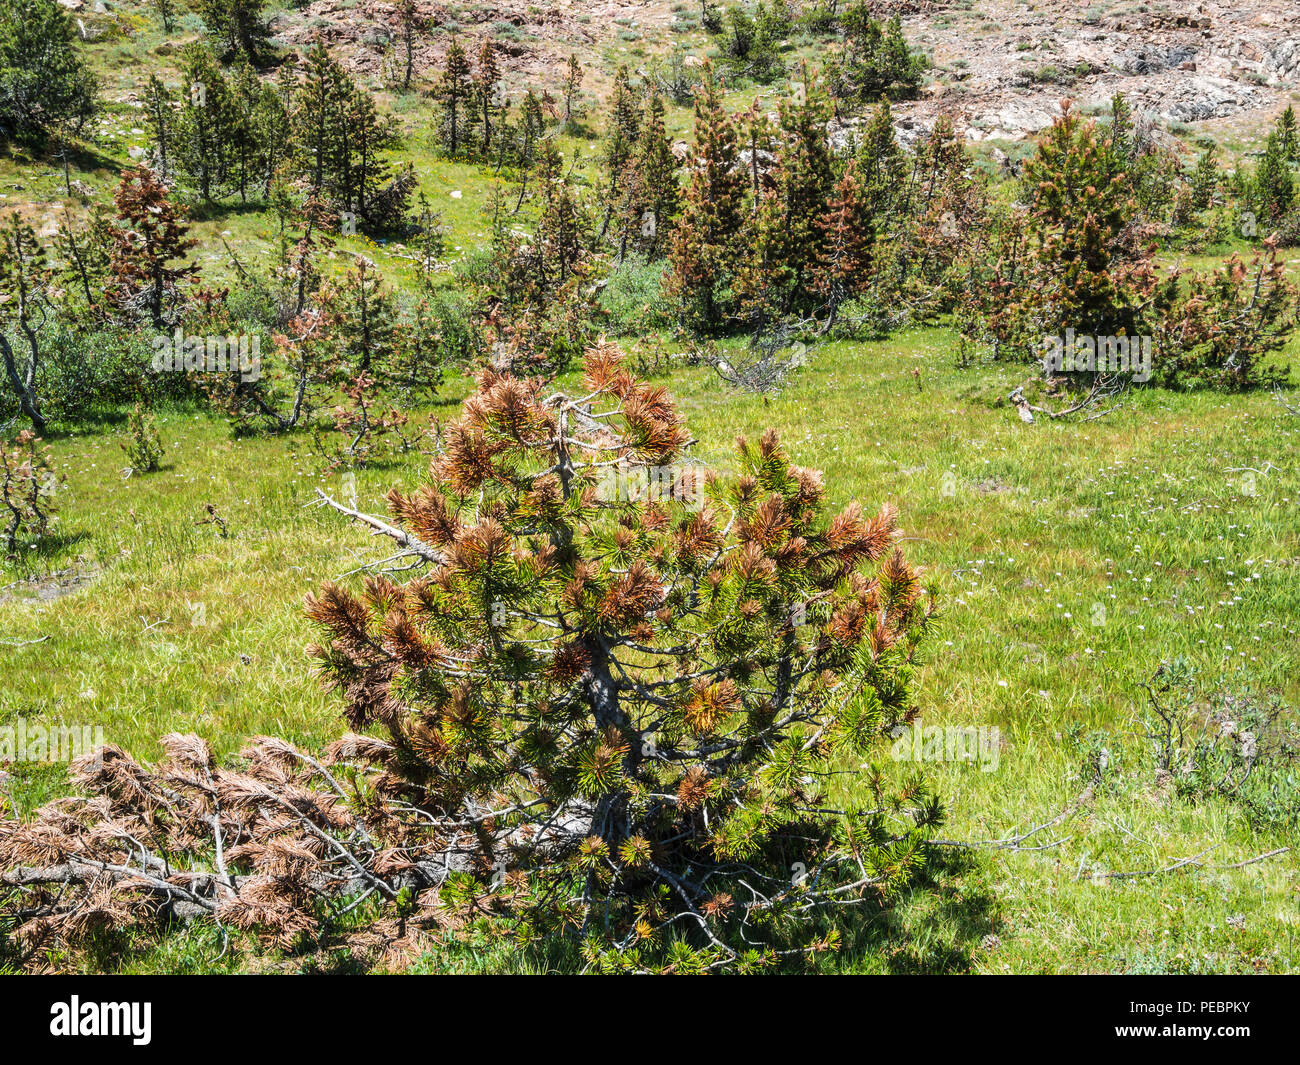 pine trees dying from bark beetle infestation - Stock Image